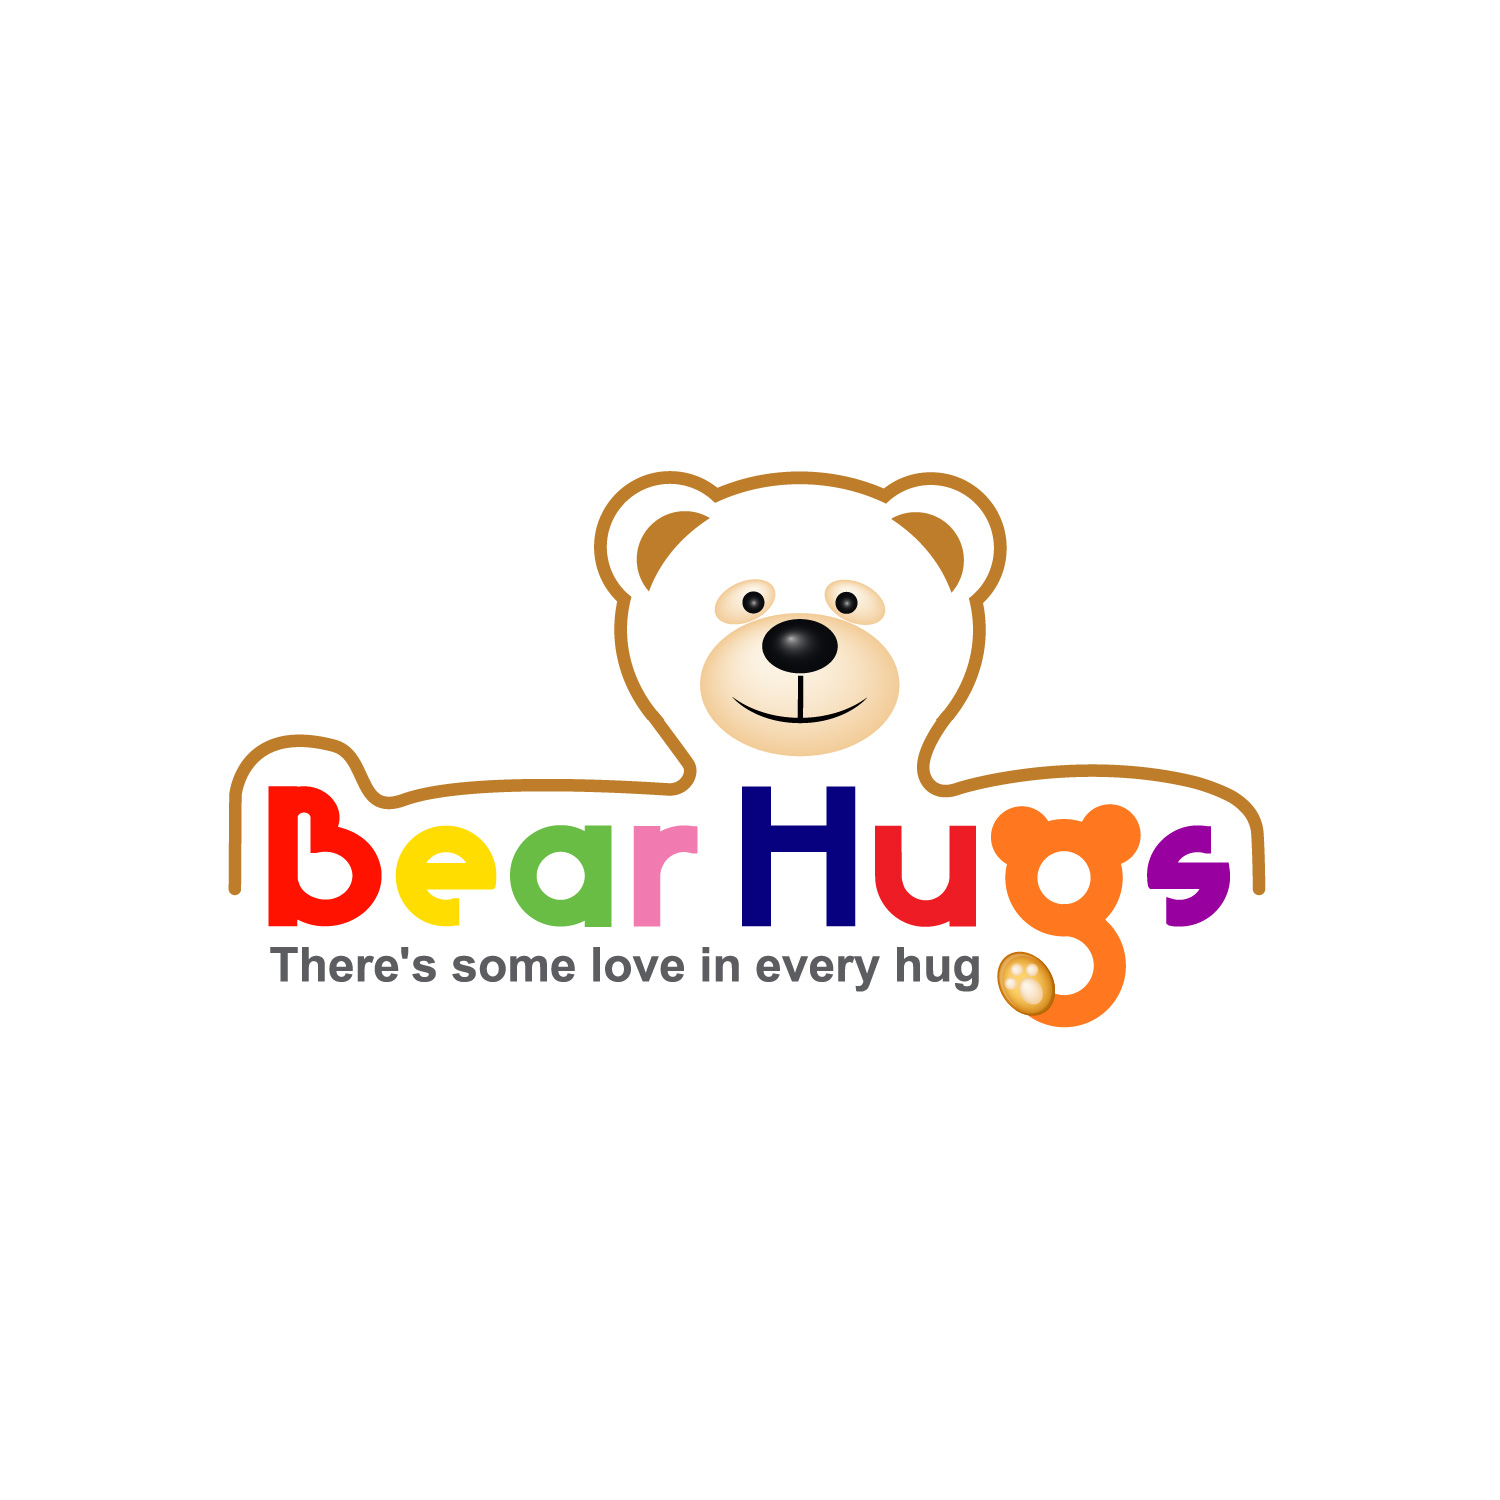 Logo Design by lagalag - Entry No. 36 in the Logo Design Contest Inspiring Logo Design for BearHugs.